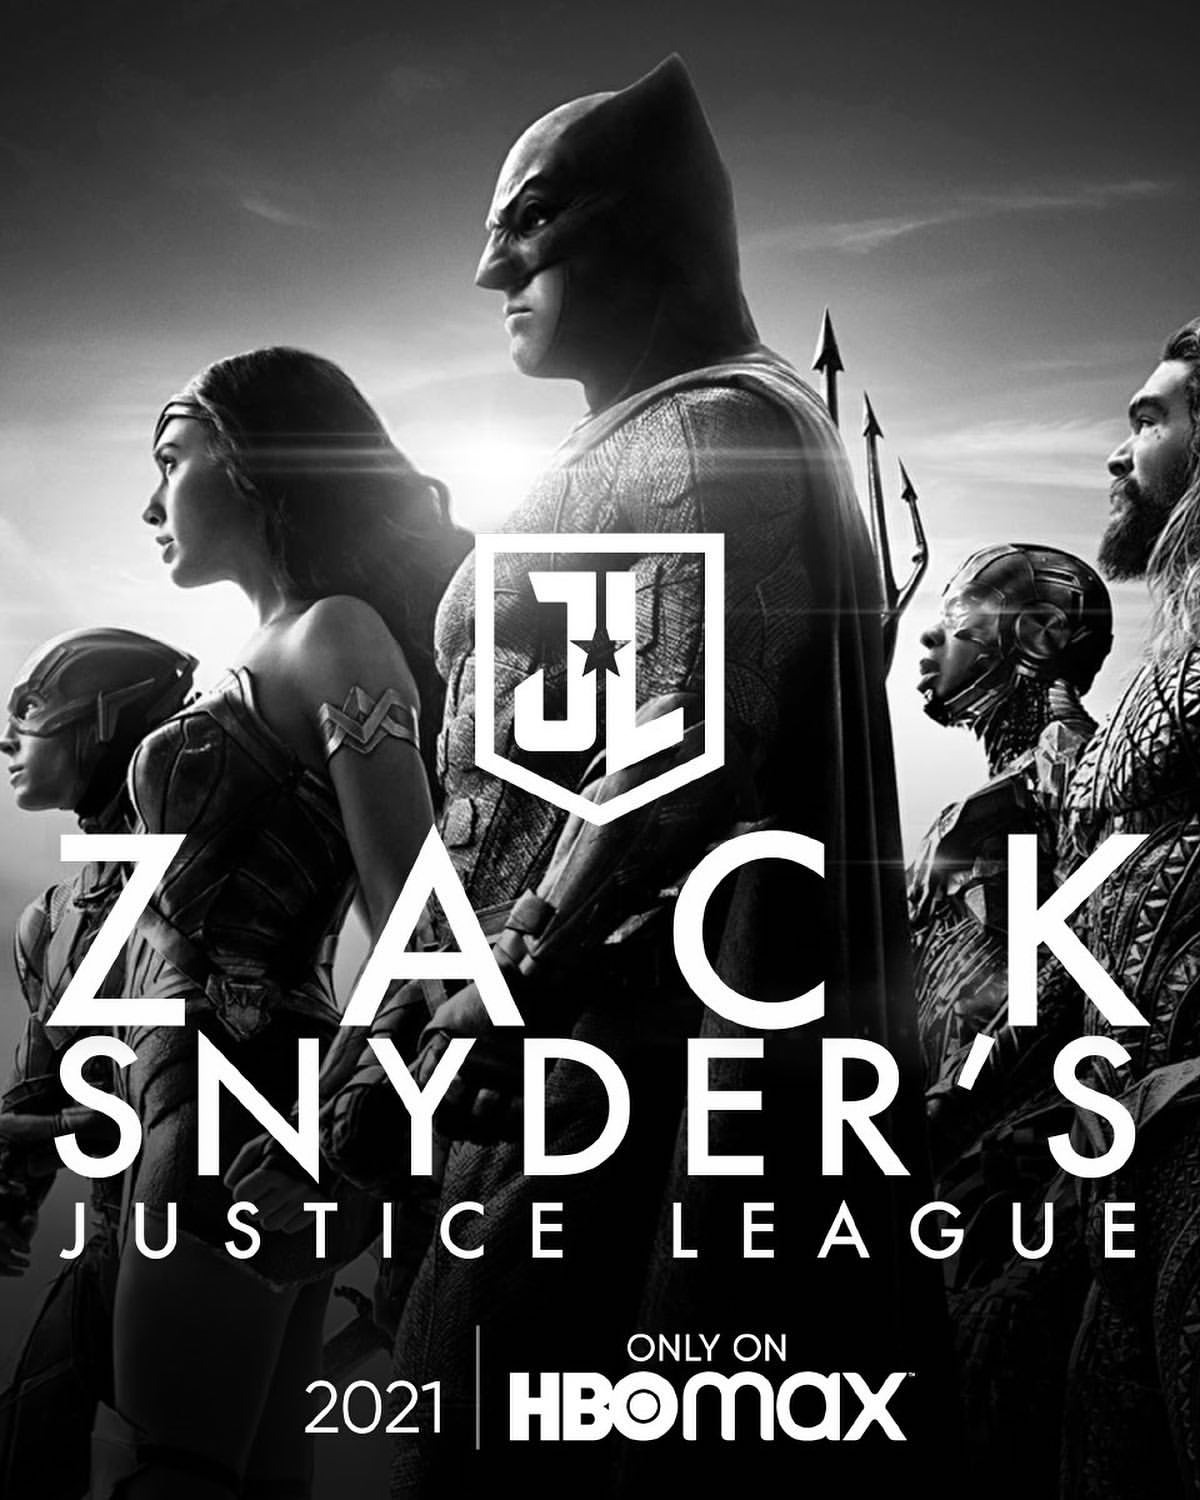 szmk_hbo_justice_league_snydercut_zack_snyder_batman_dc_comics_superman_aquaman_wonder_woman_cyborg_darkseid_2.jpg